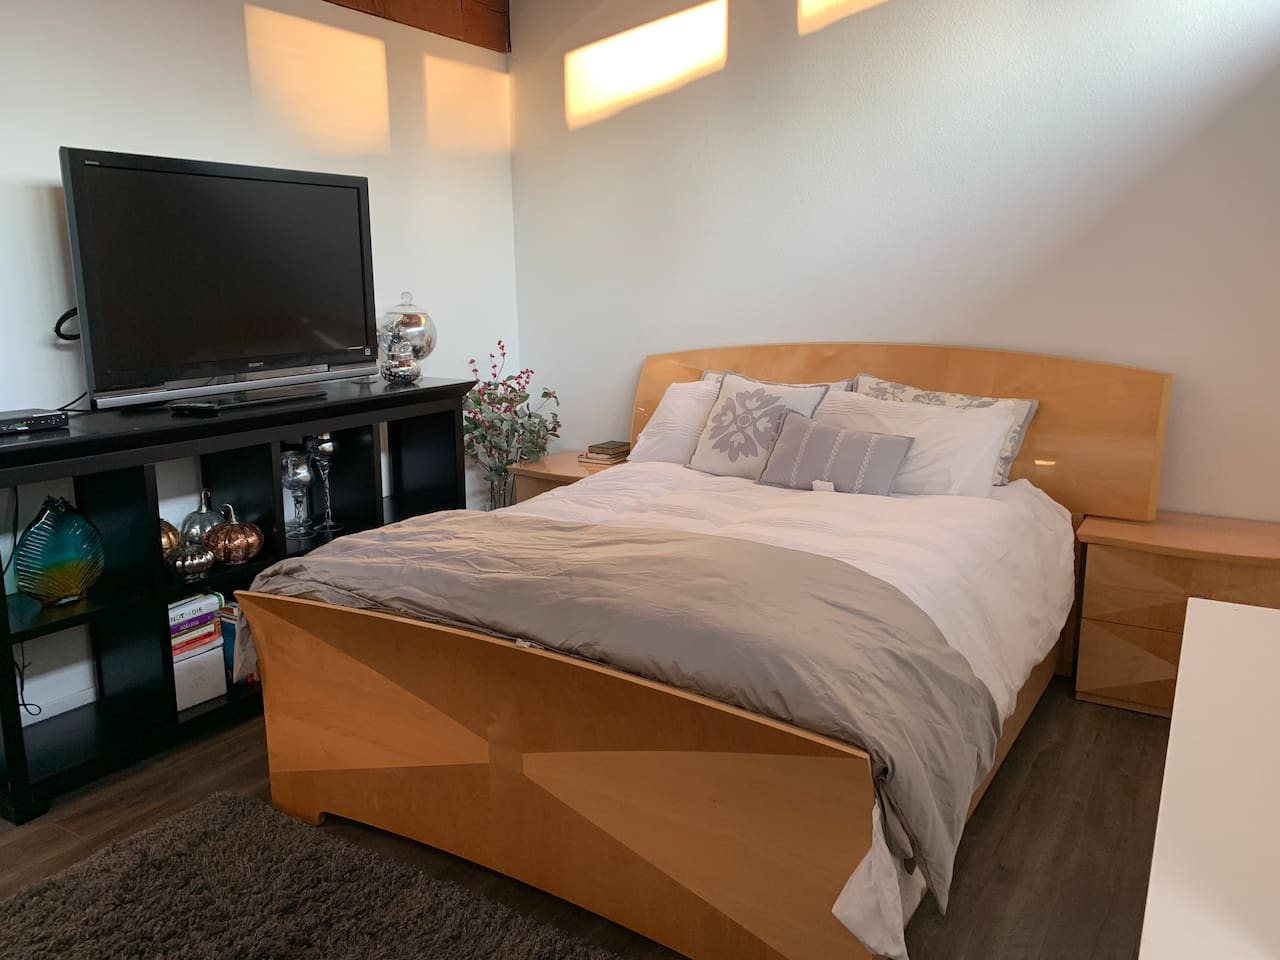 Full size bed, cable tv, plenty of room and large closet